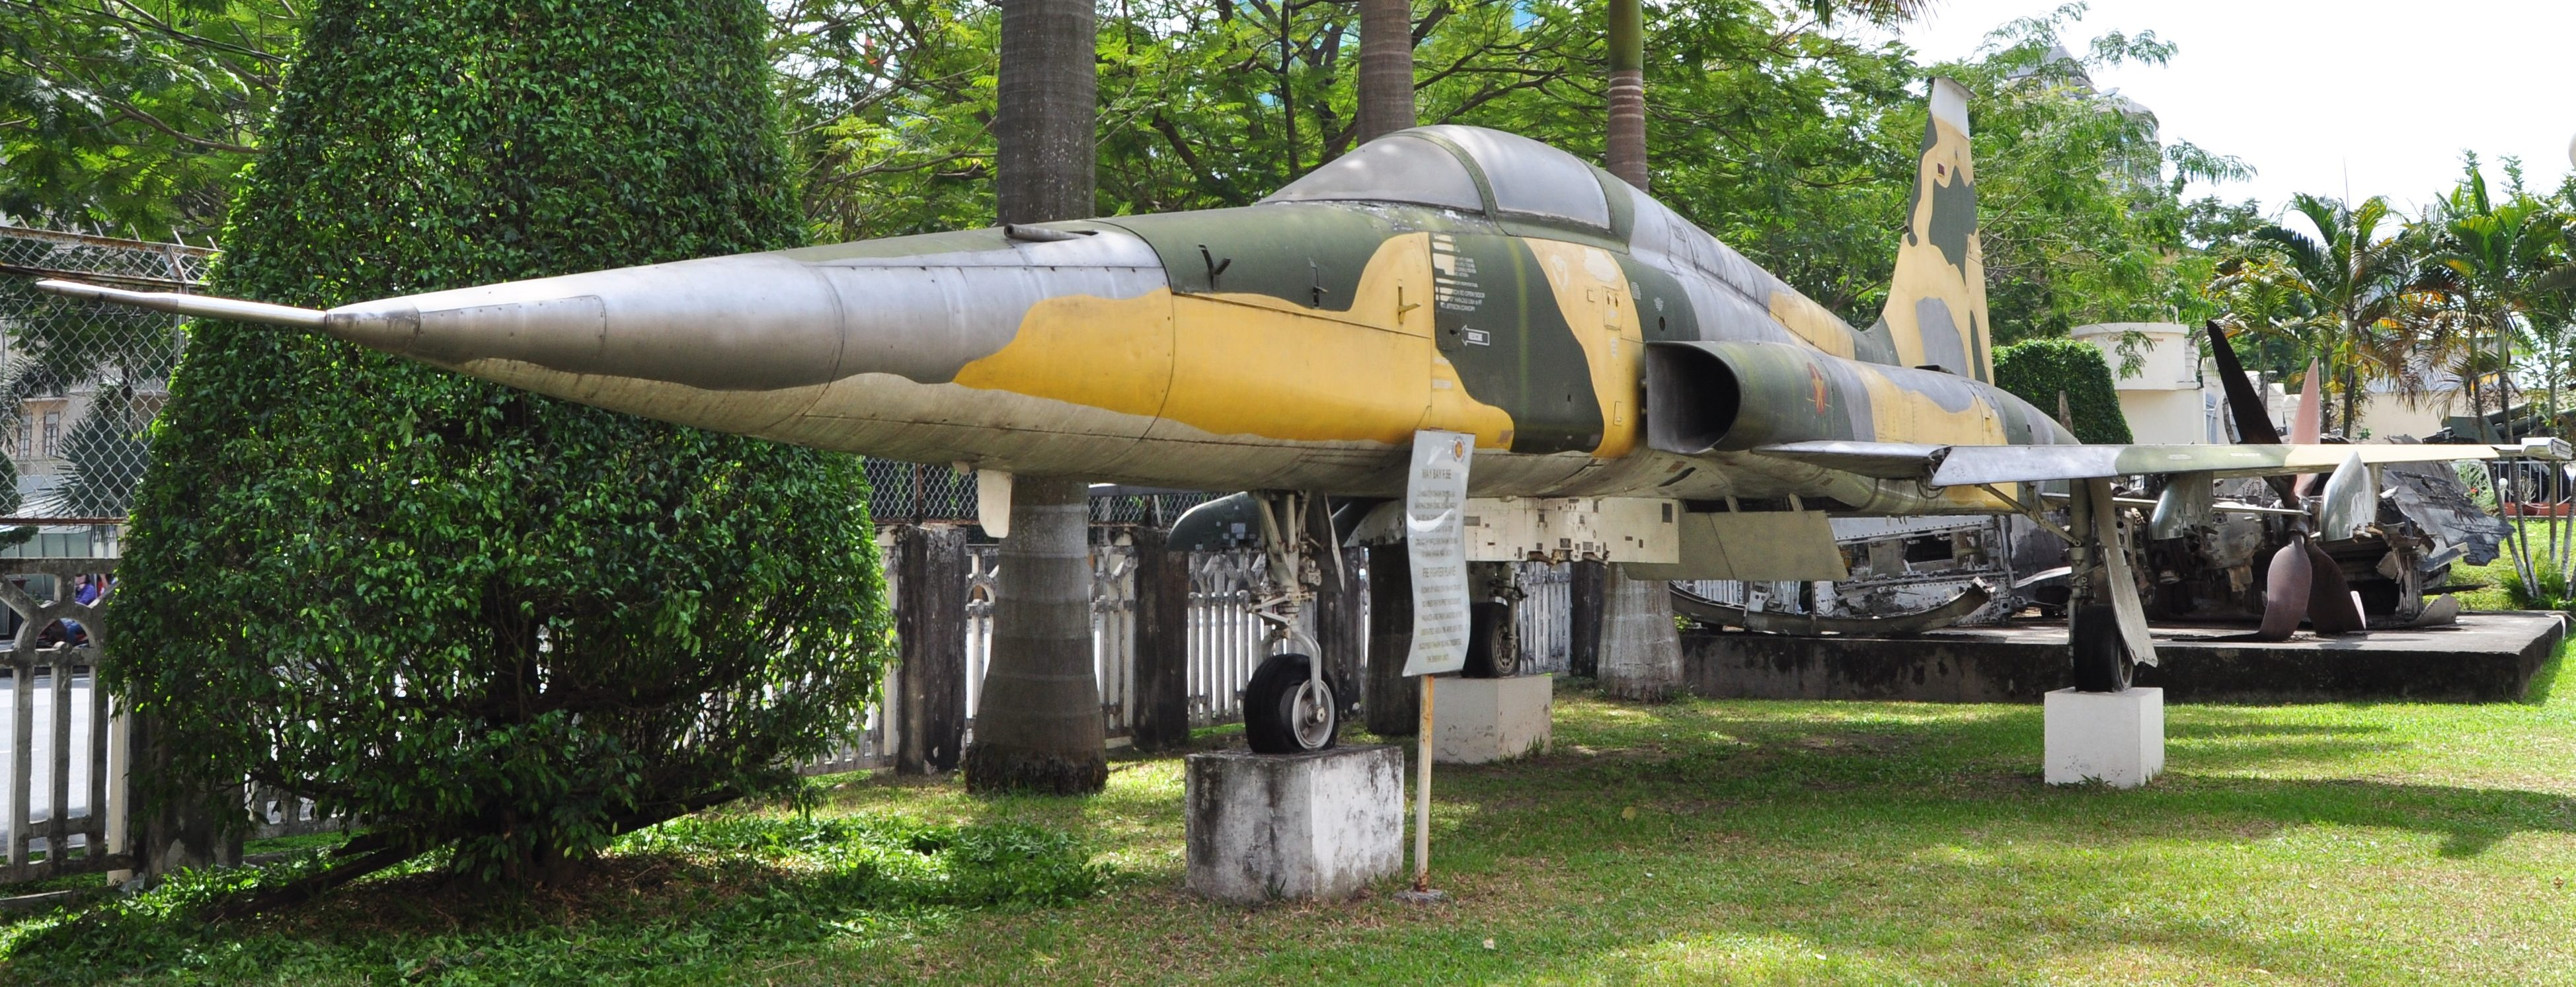 File:F5E FIGHTER PLANE at Museum of Ho Chi Minh Campaign ...